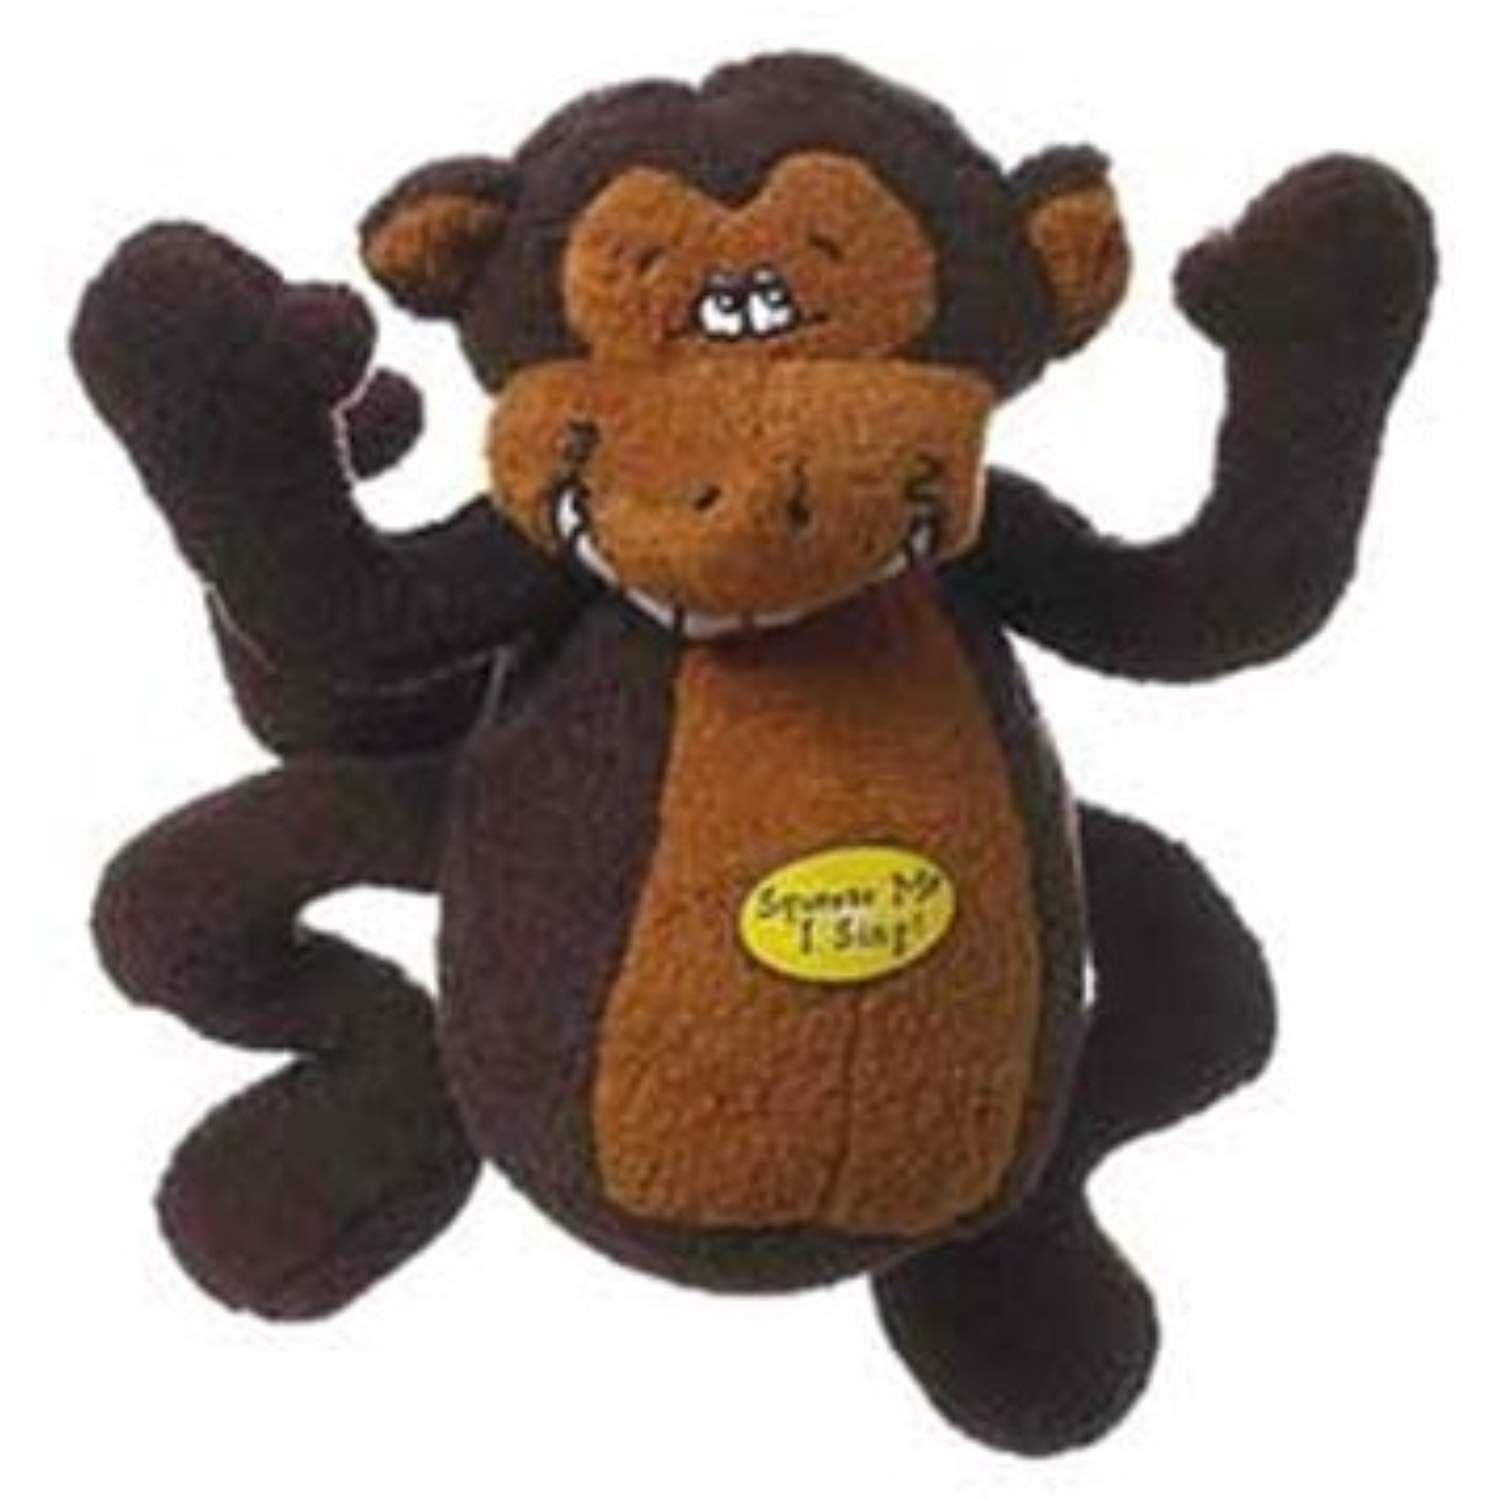 Multipet Deedle Dude 8 Inch Singing Monkey Plush Dog Toy Brown By